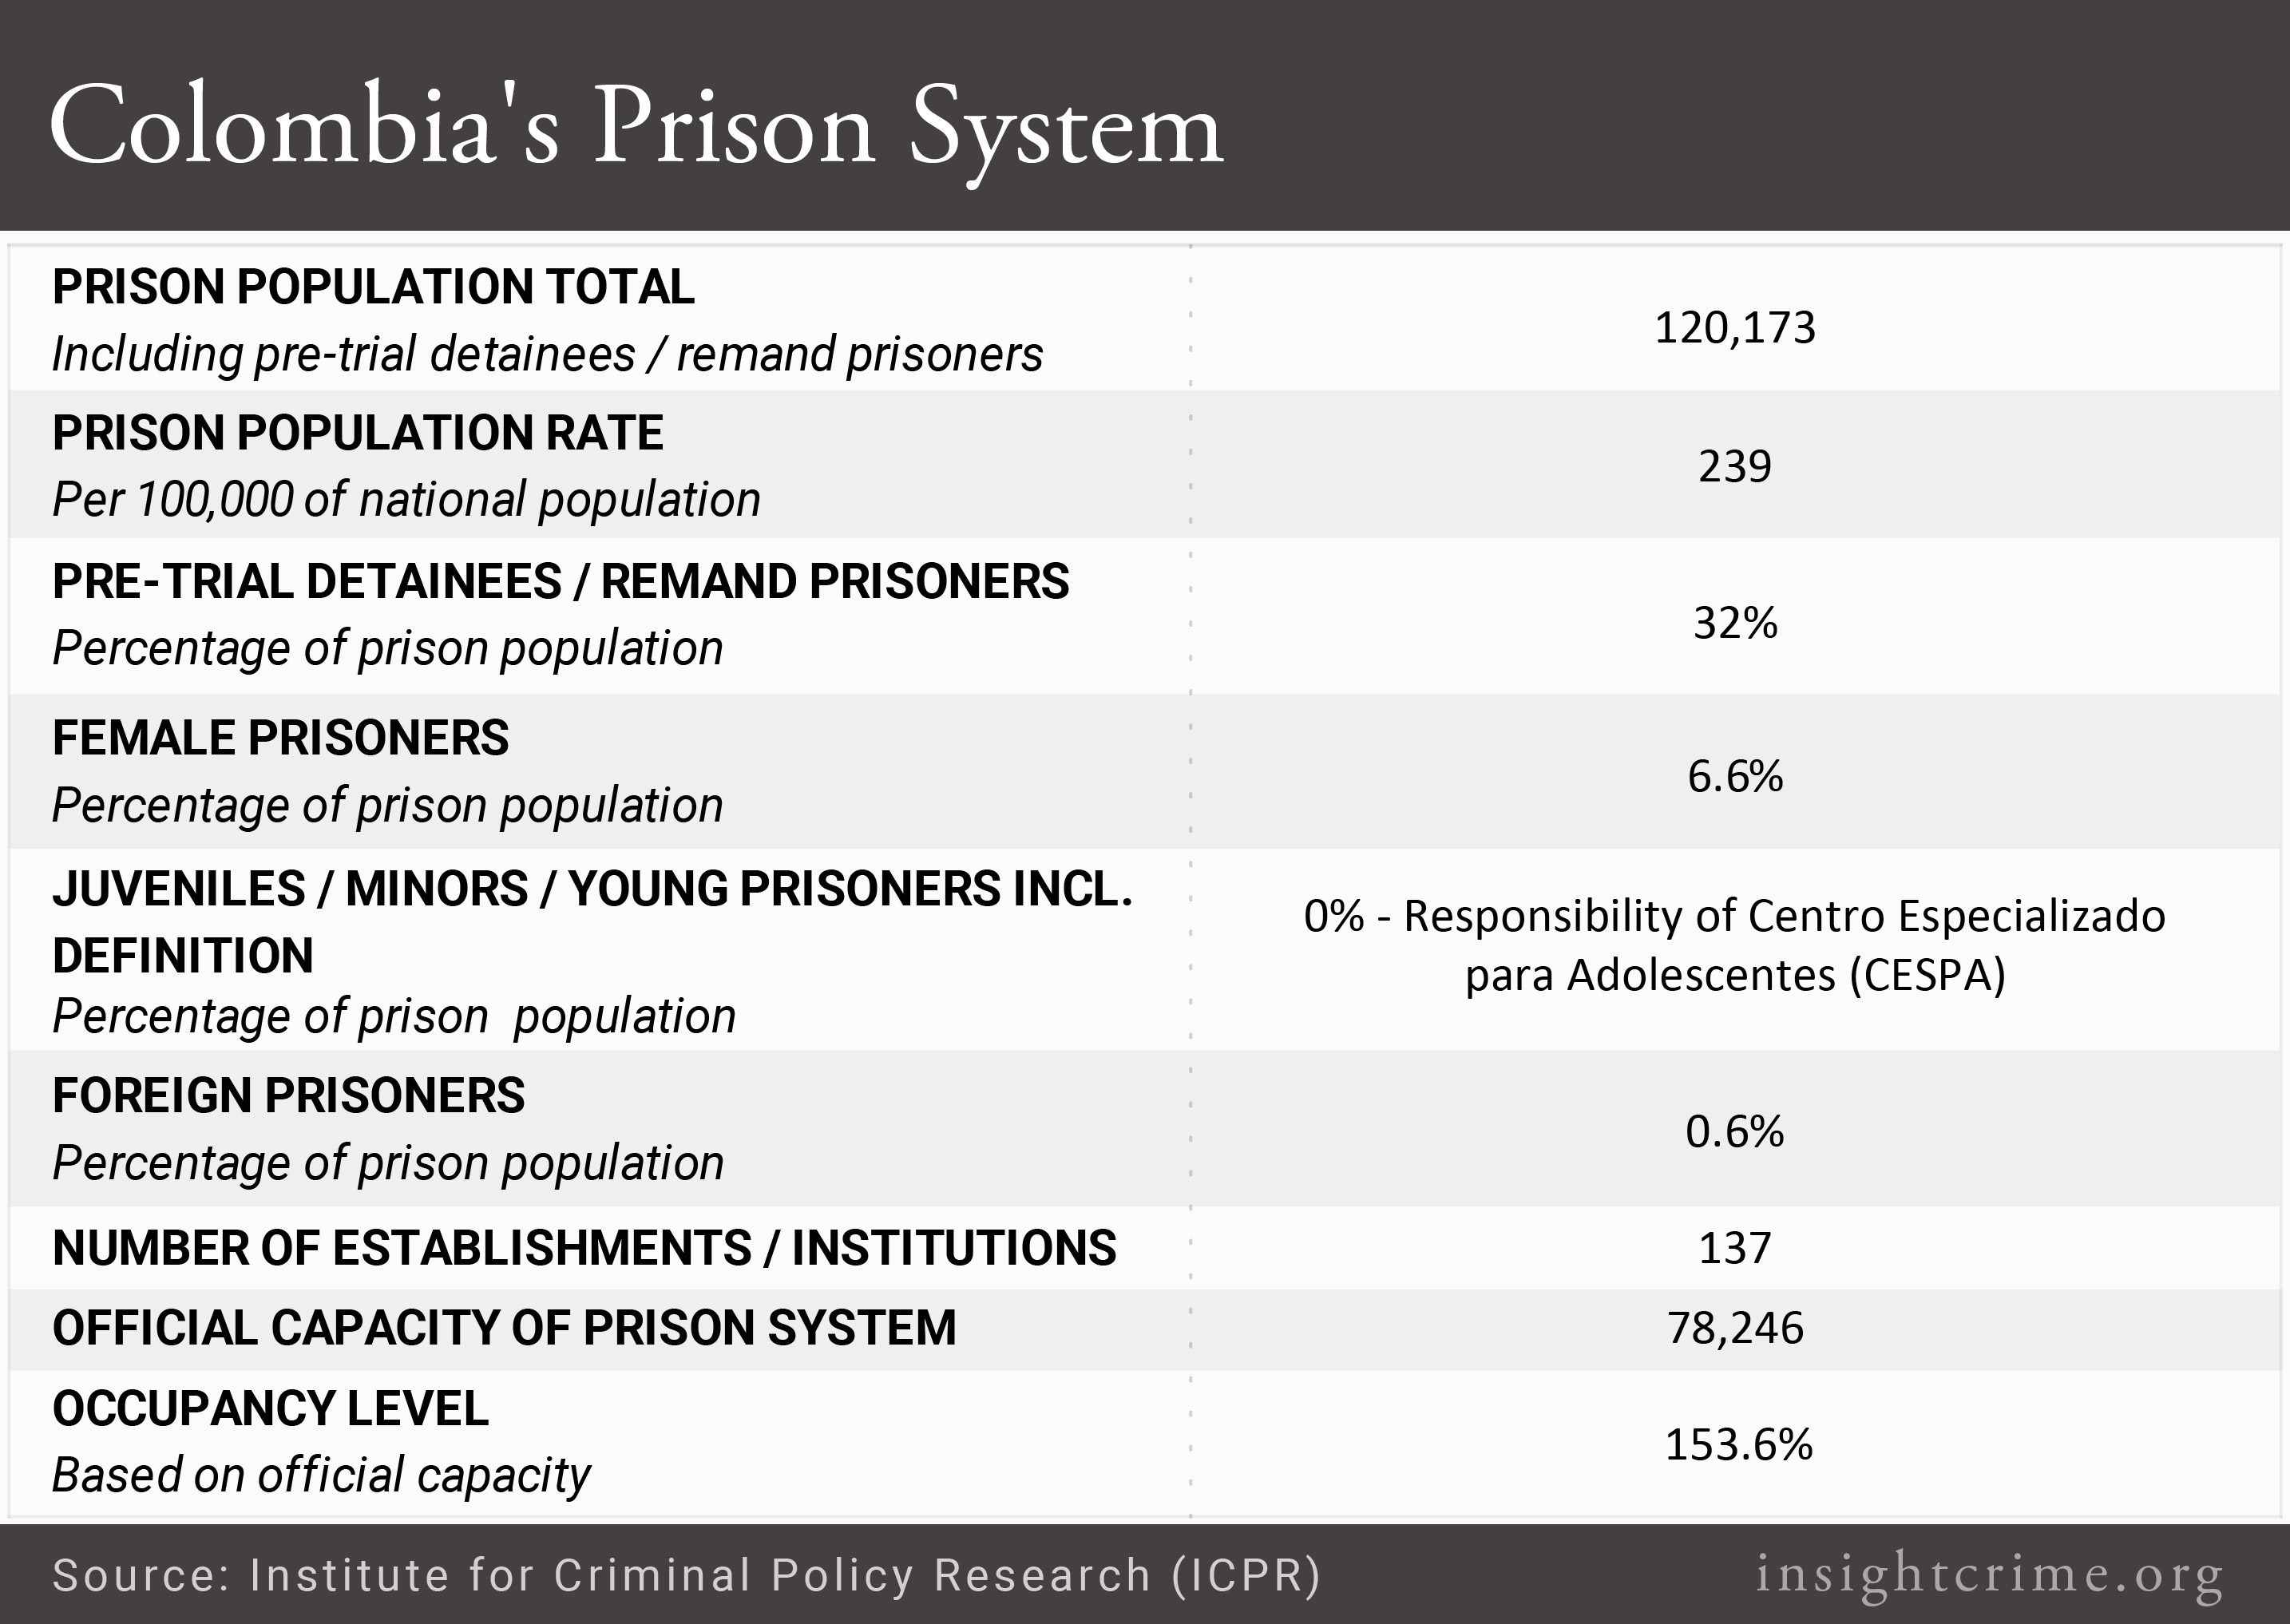 colombia-prison-system